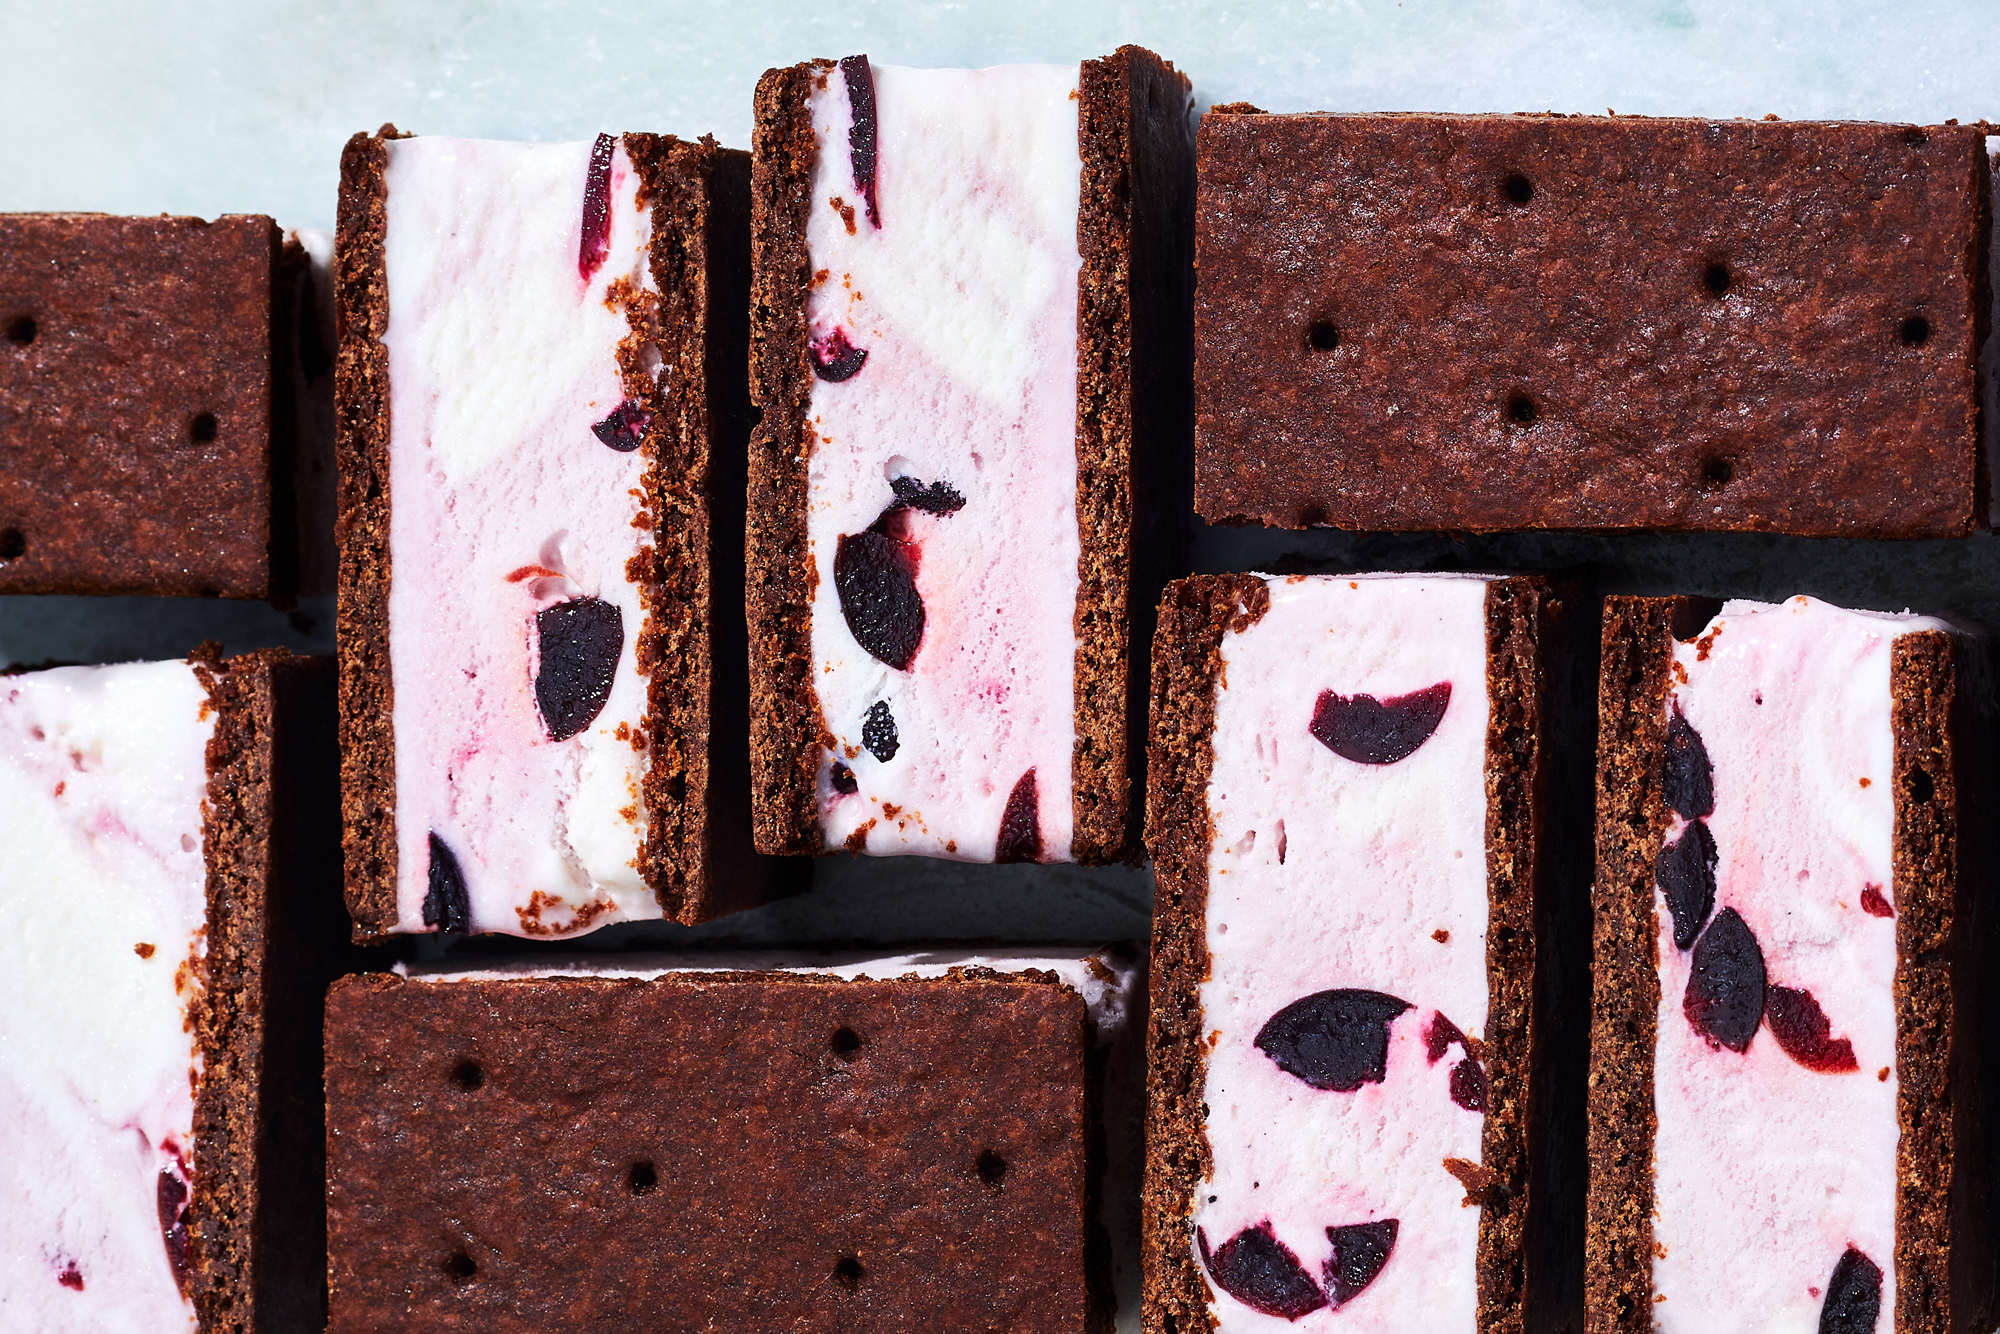 Black Cherry Chocolate Ice Cream Sandwiches Recipe